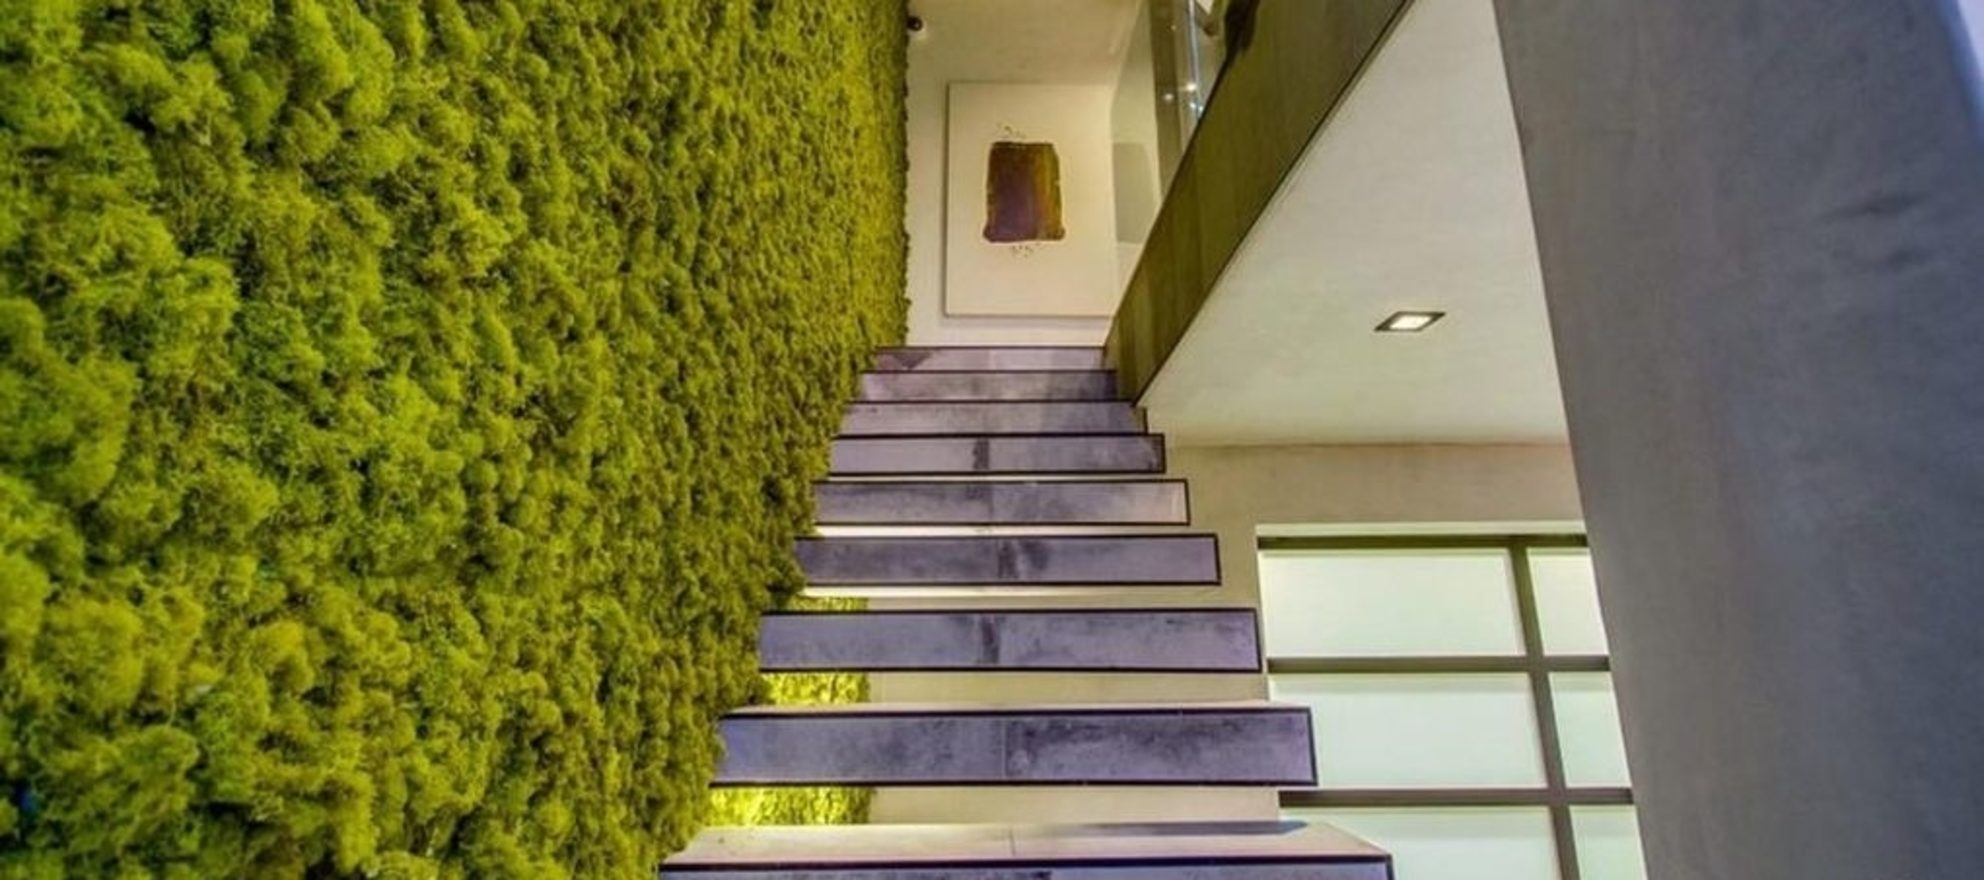 This listing agent spruced up a mansion with a living wall